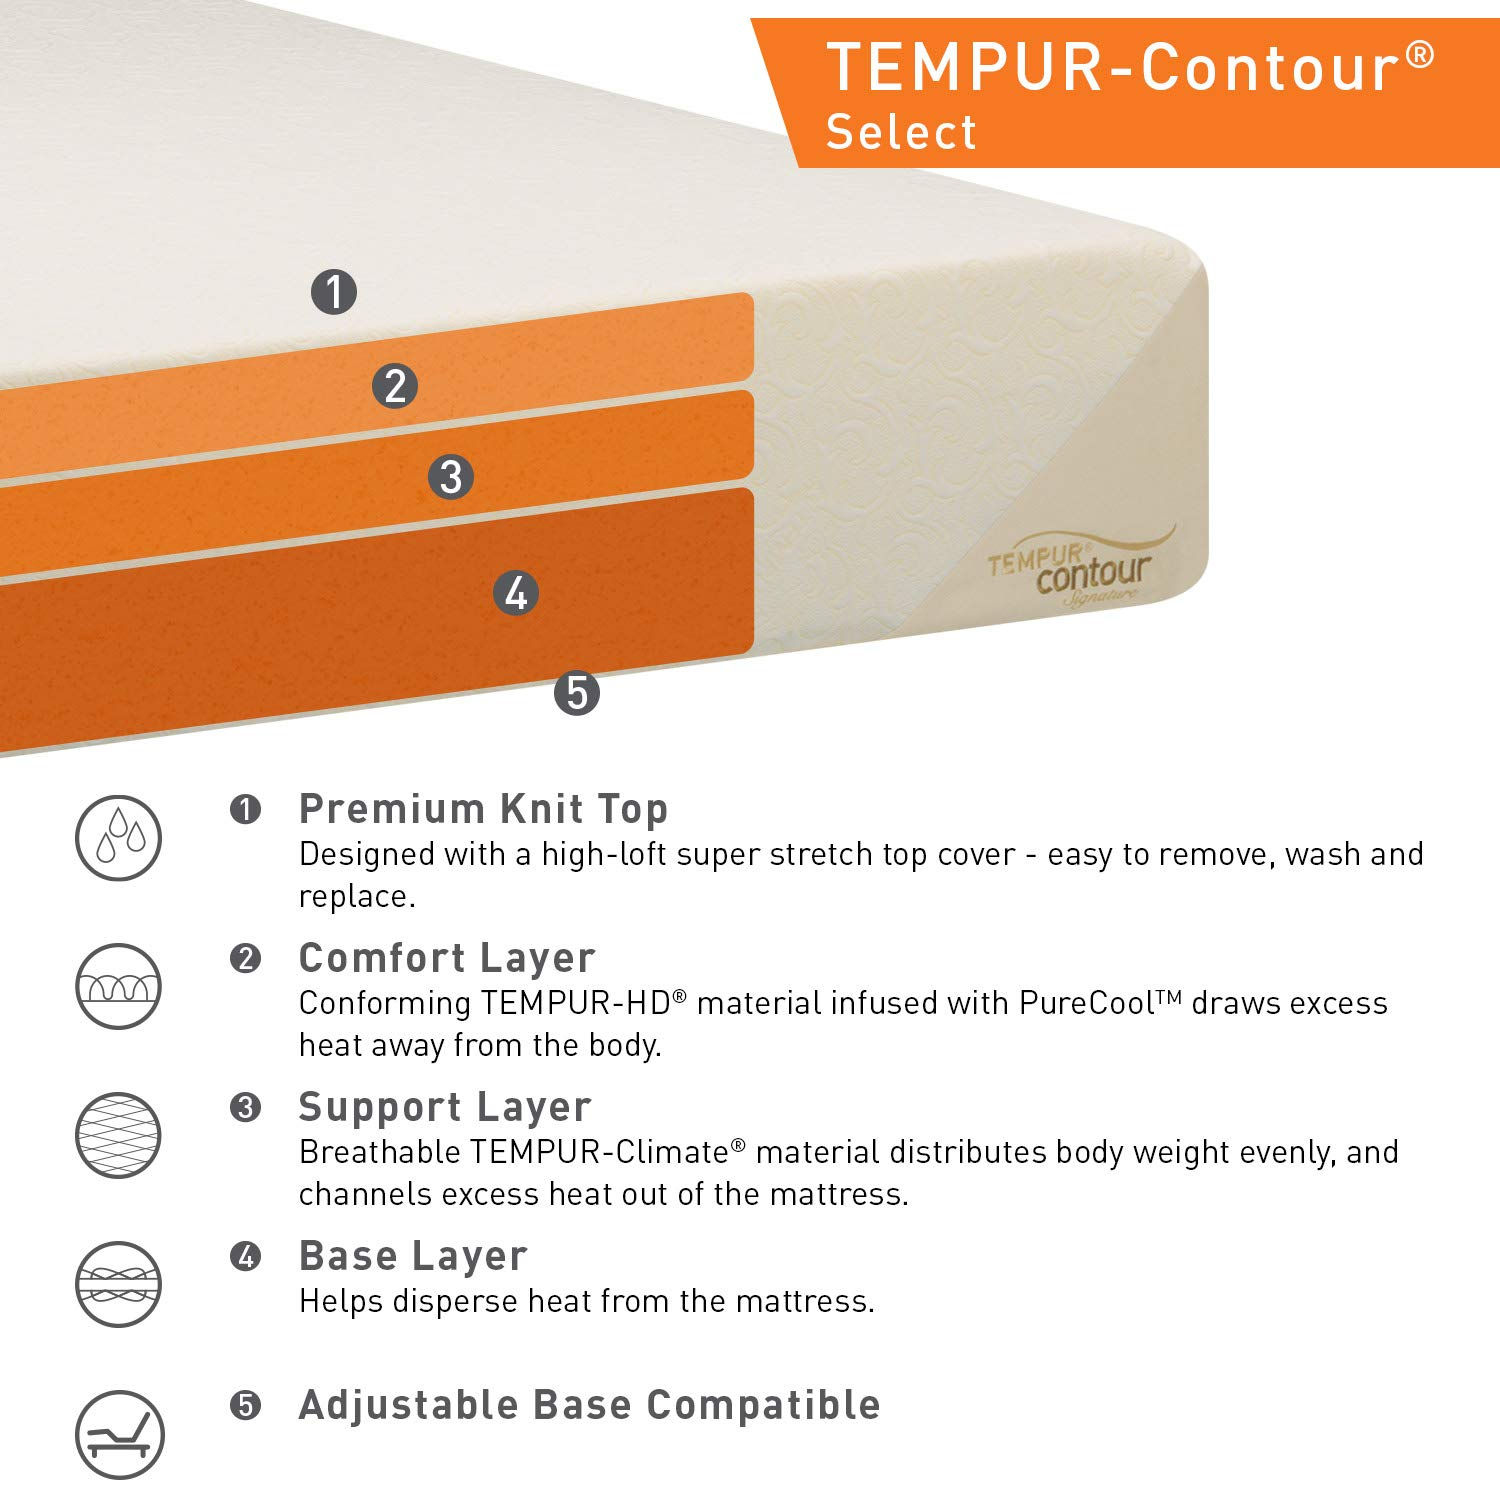 Amazon.com: Tempur-Pedic TEMPUR-Contour Select 10-Inch Foam Mattress, King, Made in USA, 10 Year Warranty: Kitchen & Dining